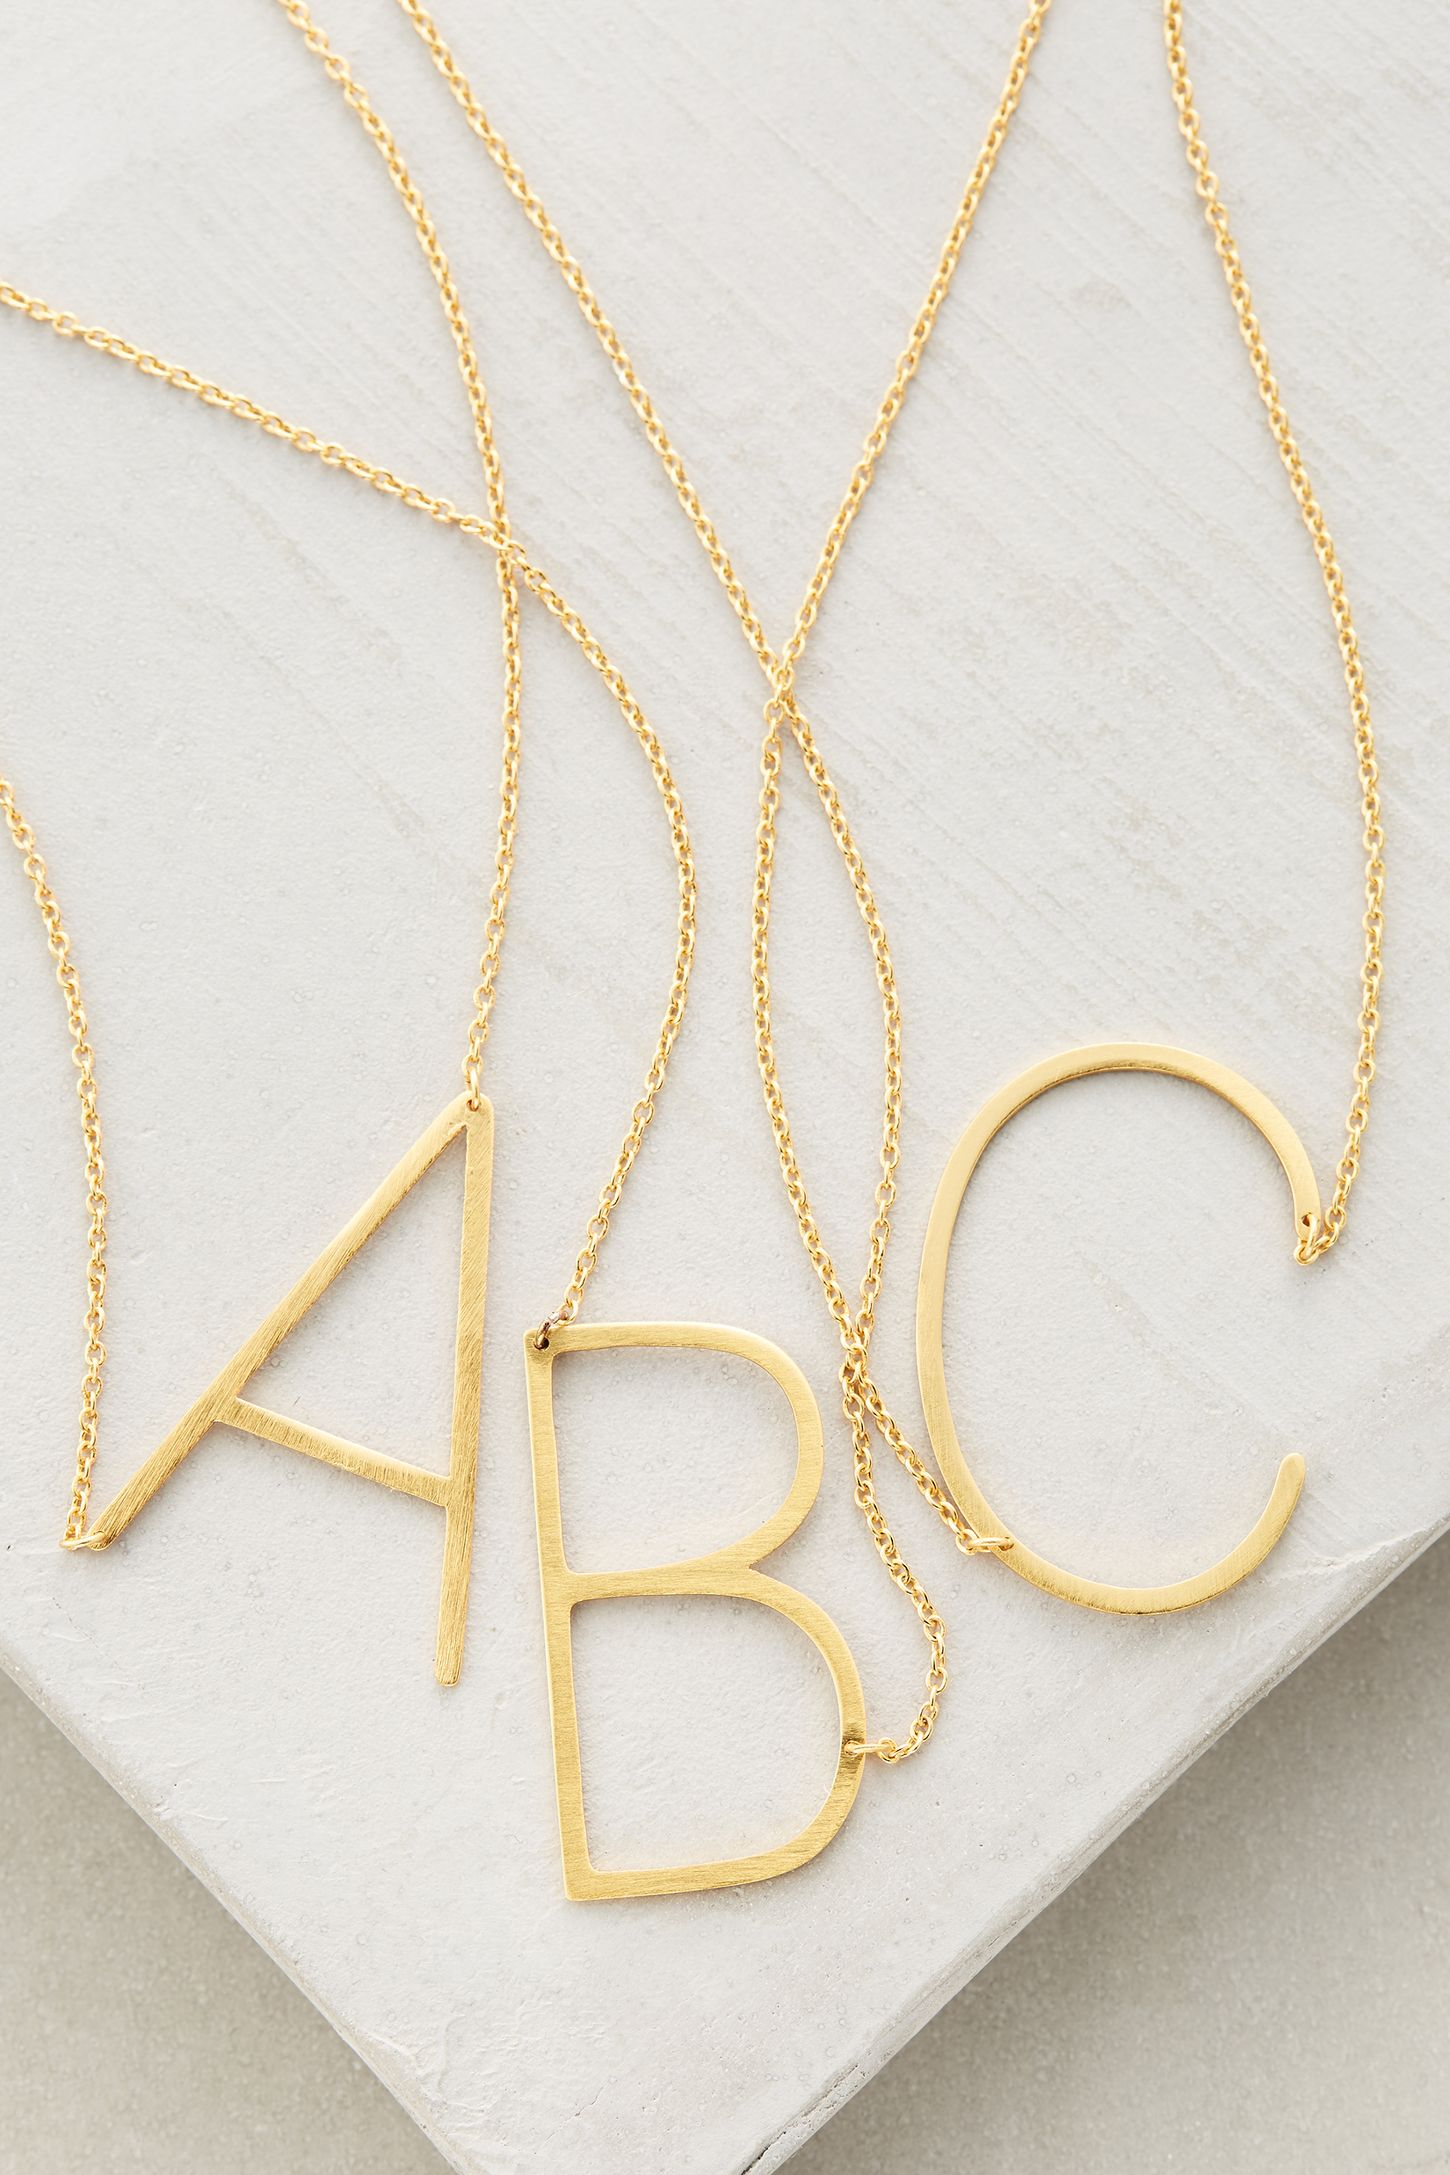 Gold initial monogram pendant necklaces from Anthropologie holiday gift guide